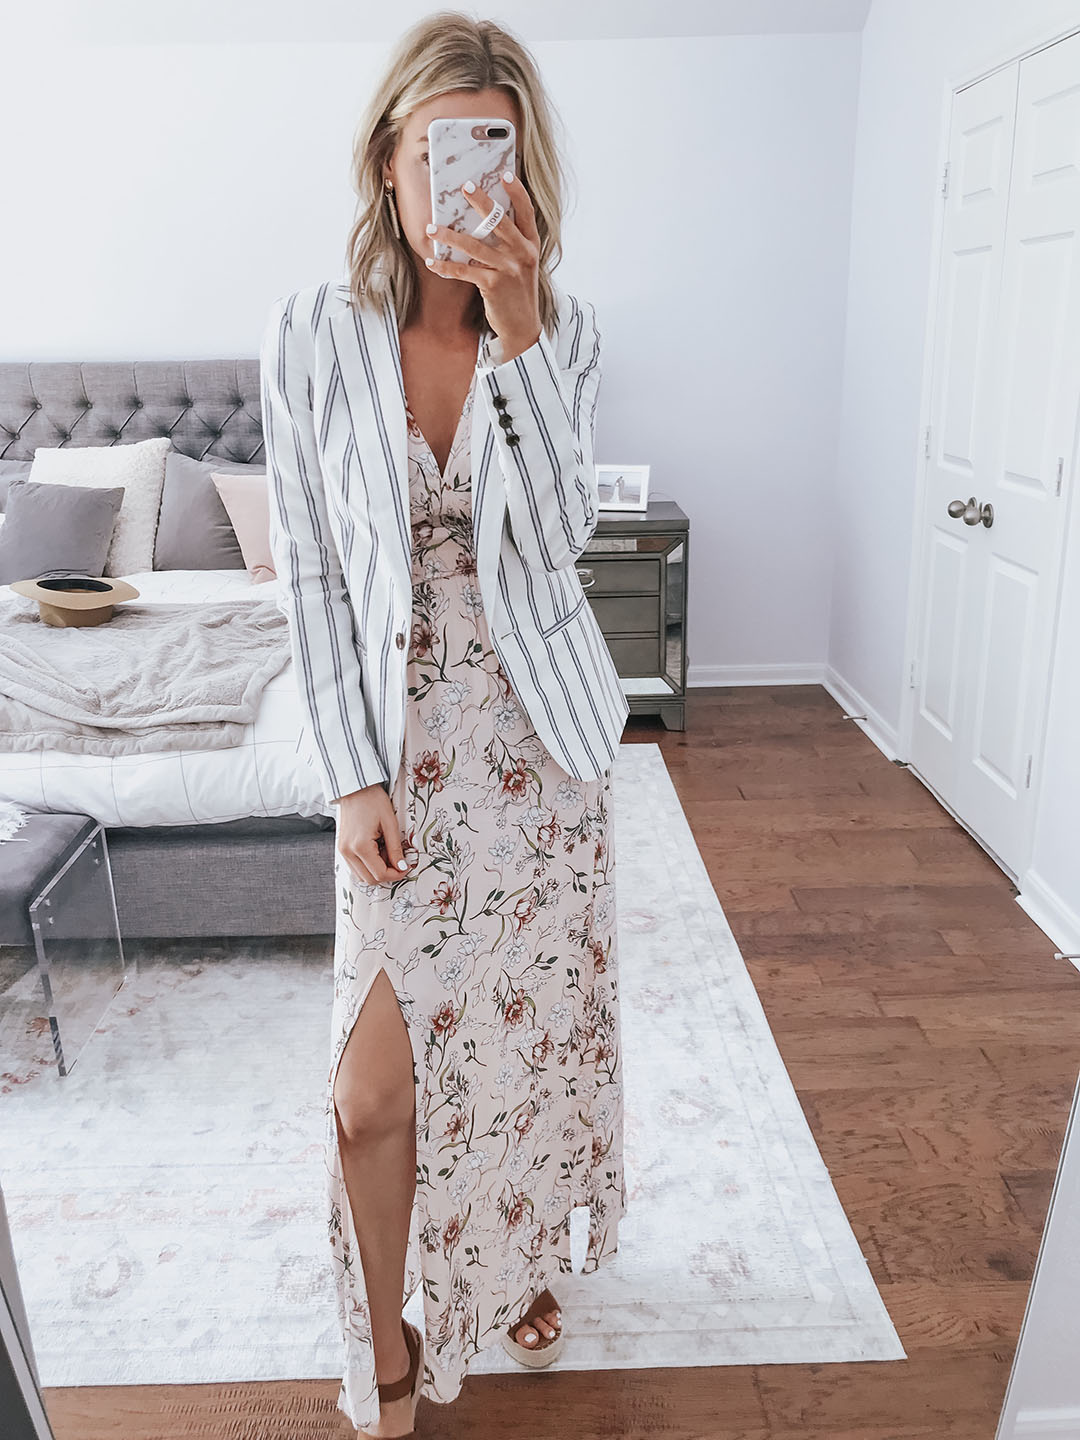 3e956ff9677 OUTFIT ABOVE: Floral Maxi Dress (fit TTS + on sale for $25) // Striped  Blazer (I sized down to a size 2) // Espadrille Wedges (fit TTS + so comfy)  // Wrap ...